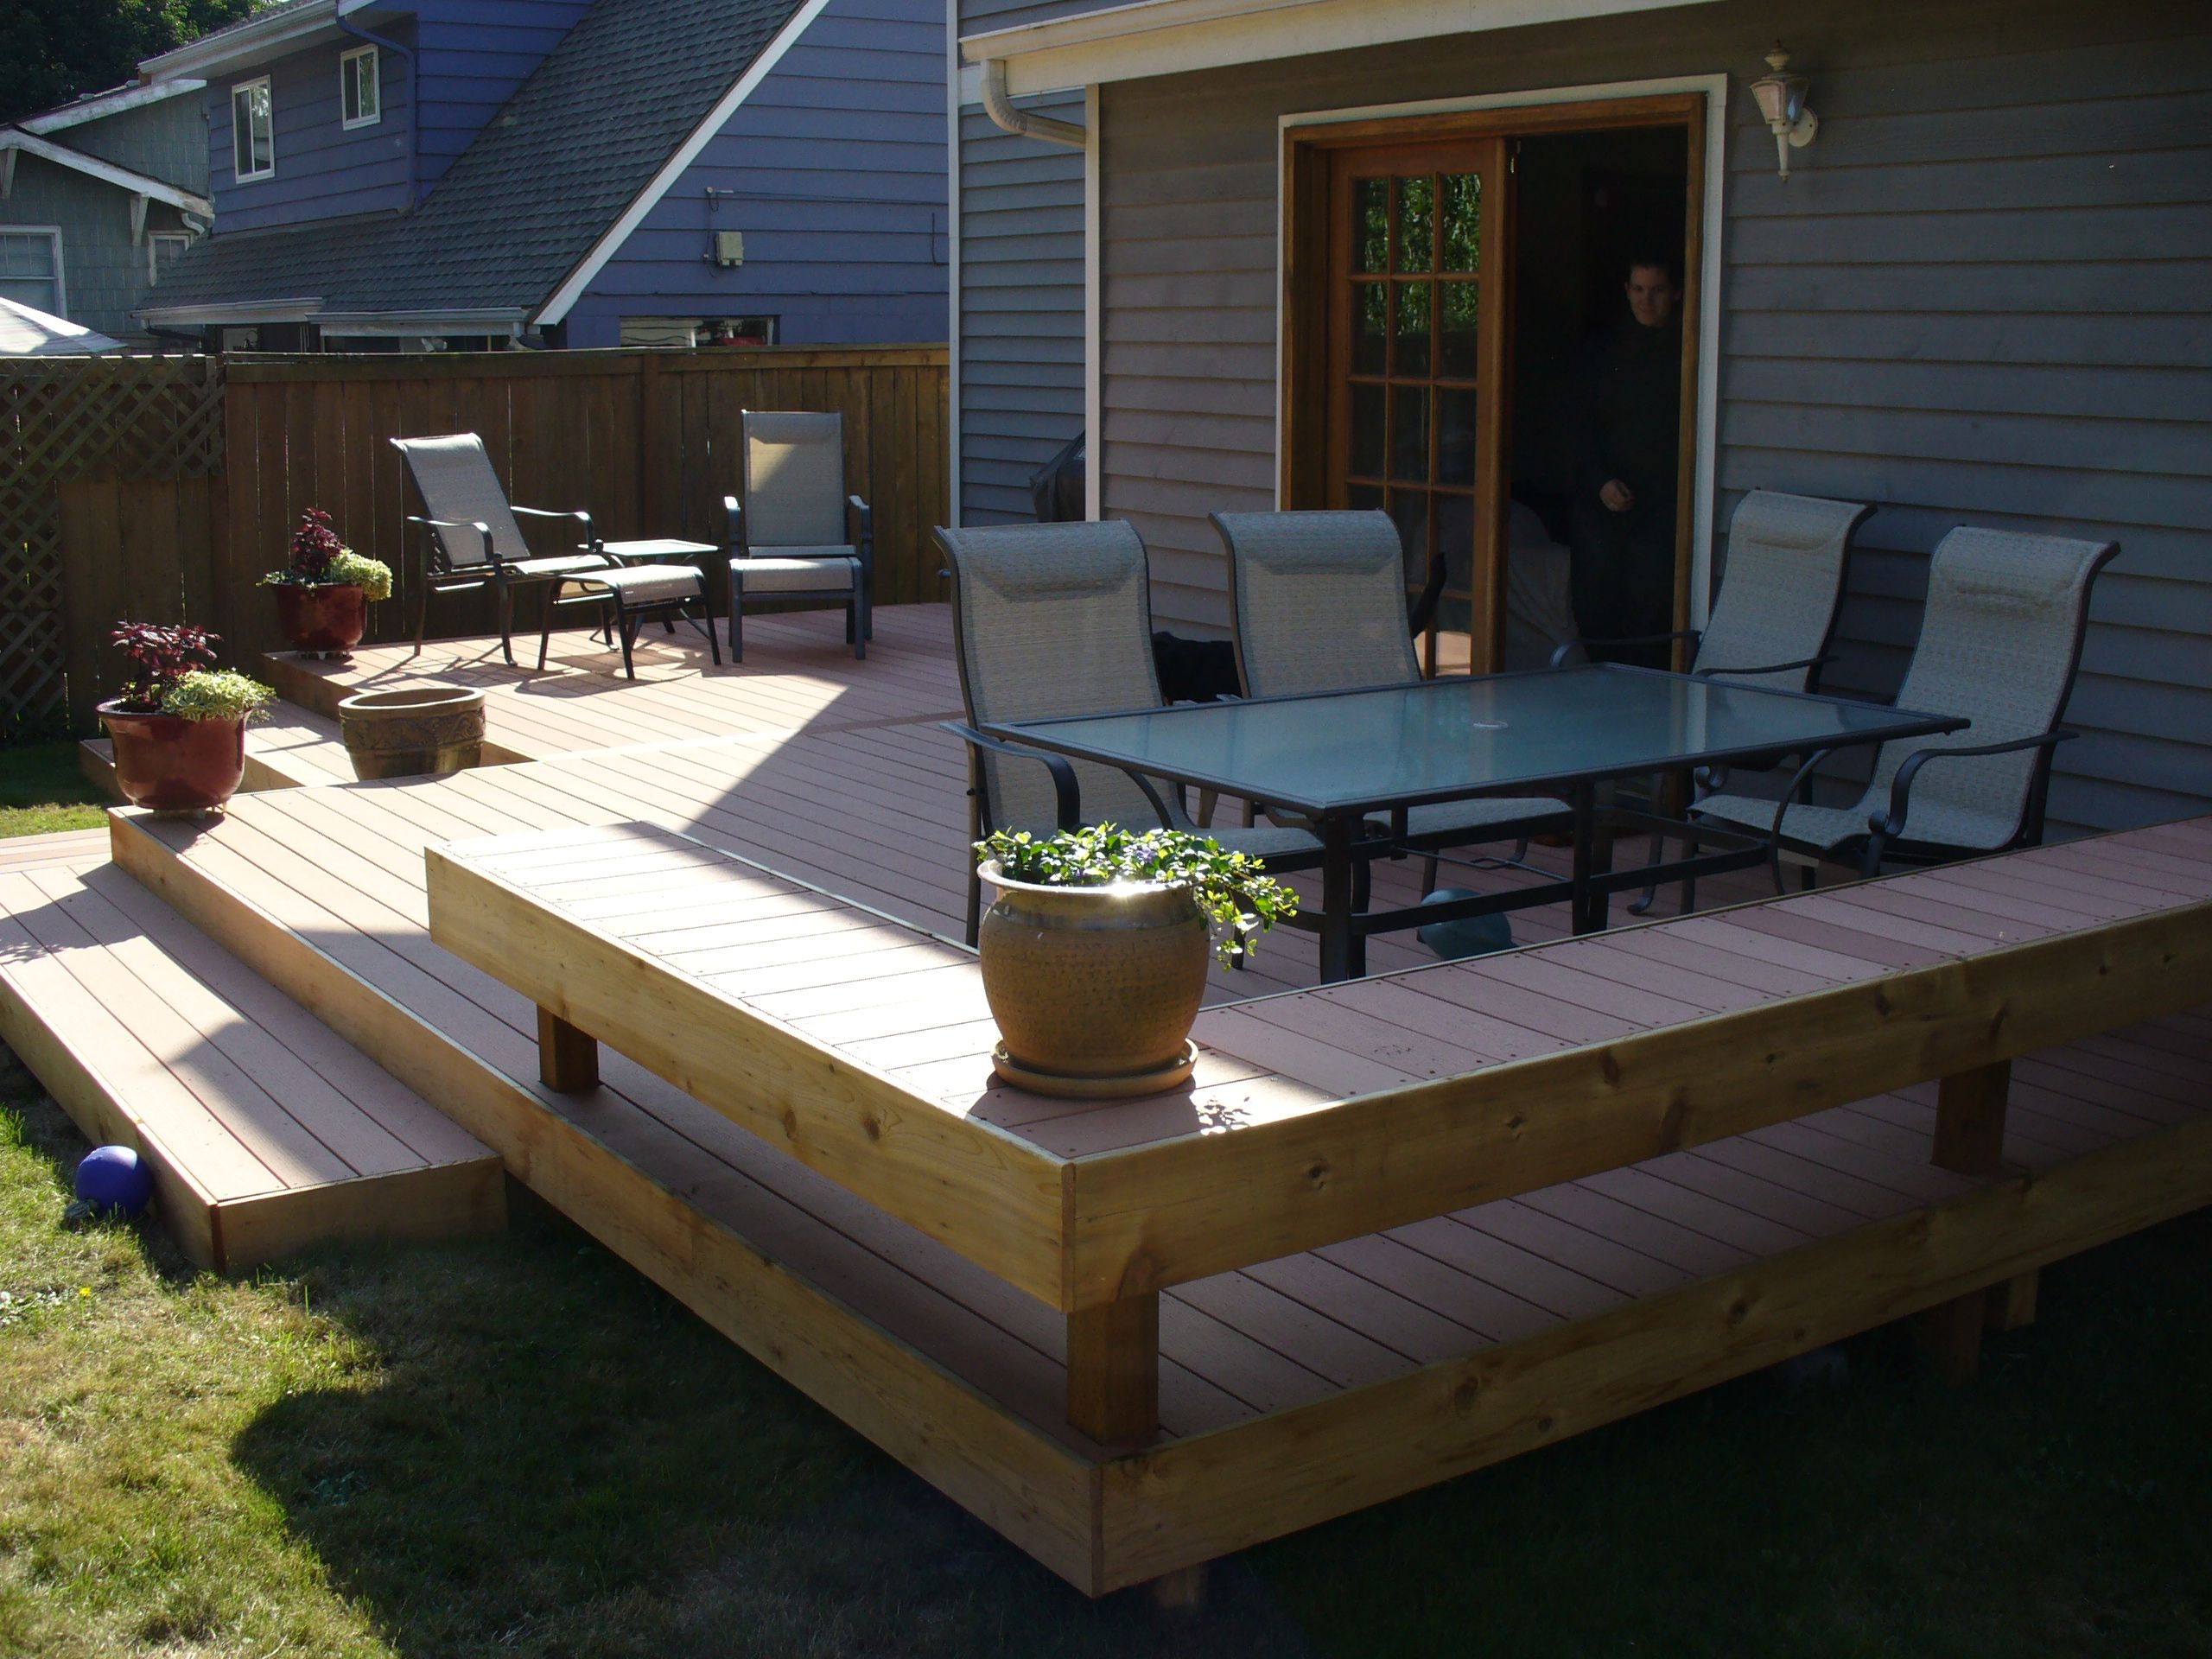 Stunning Ground Level Deck Plans For Inspiring Outdoor Decoration Ideas Ground Level Deck Plans With Bench And Cozy Furniture Fo Decks Backyard Patio Backyard